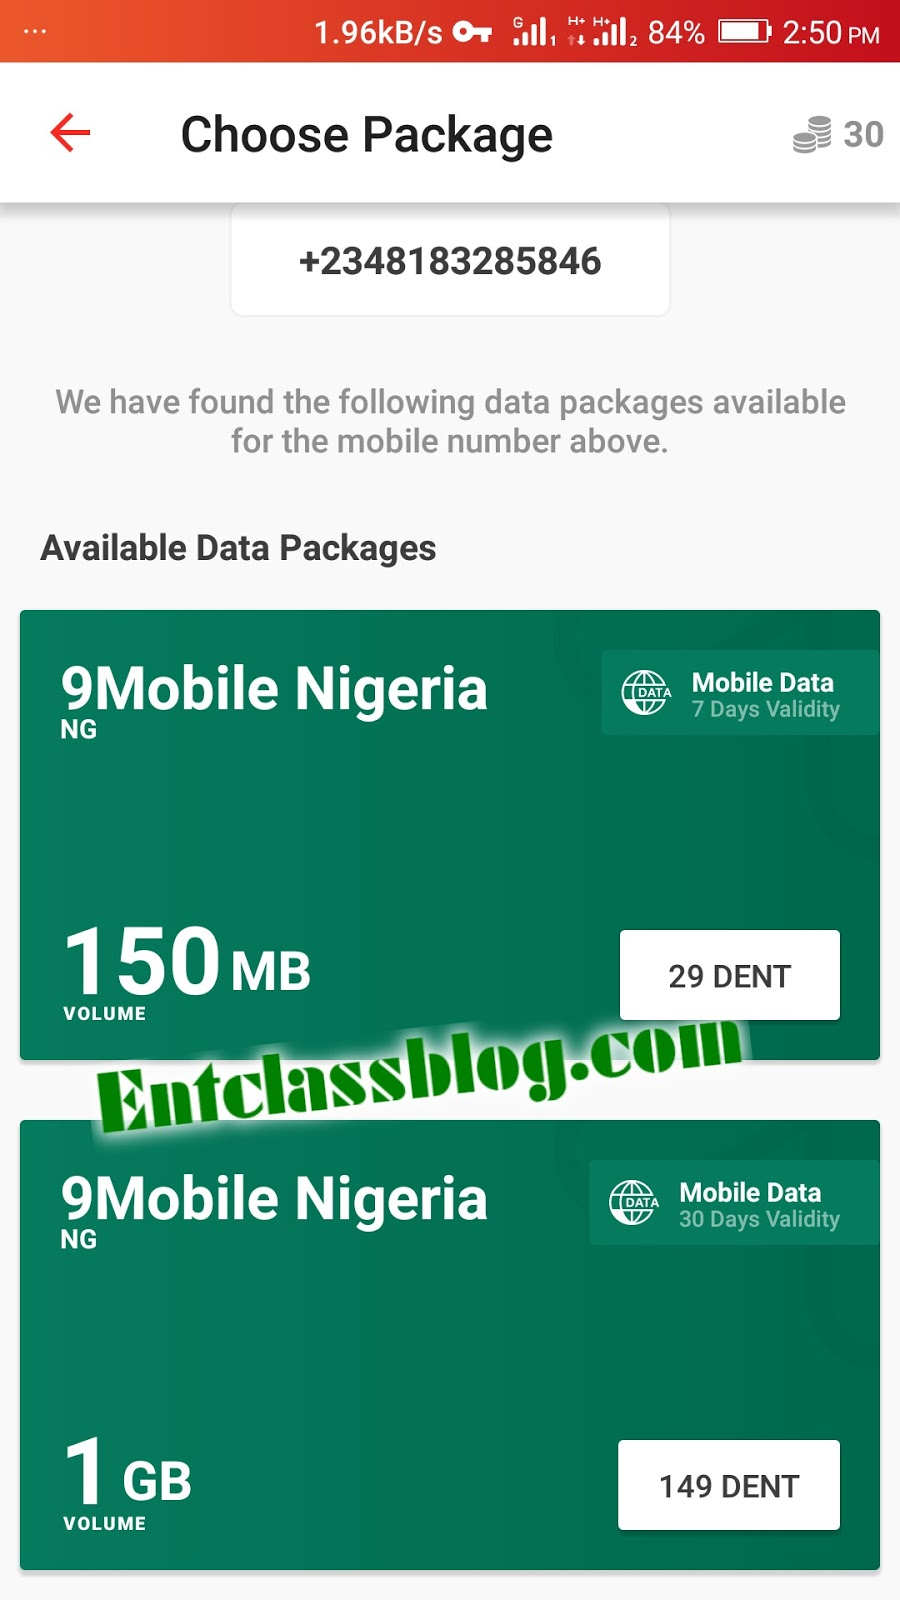 How To Get Unlimited Data On Any Network Using Dent Android app